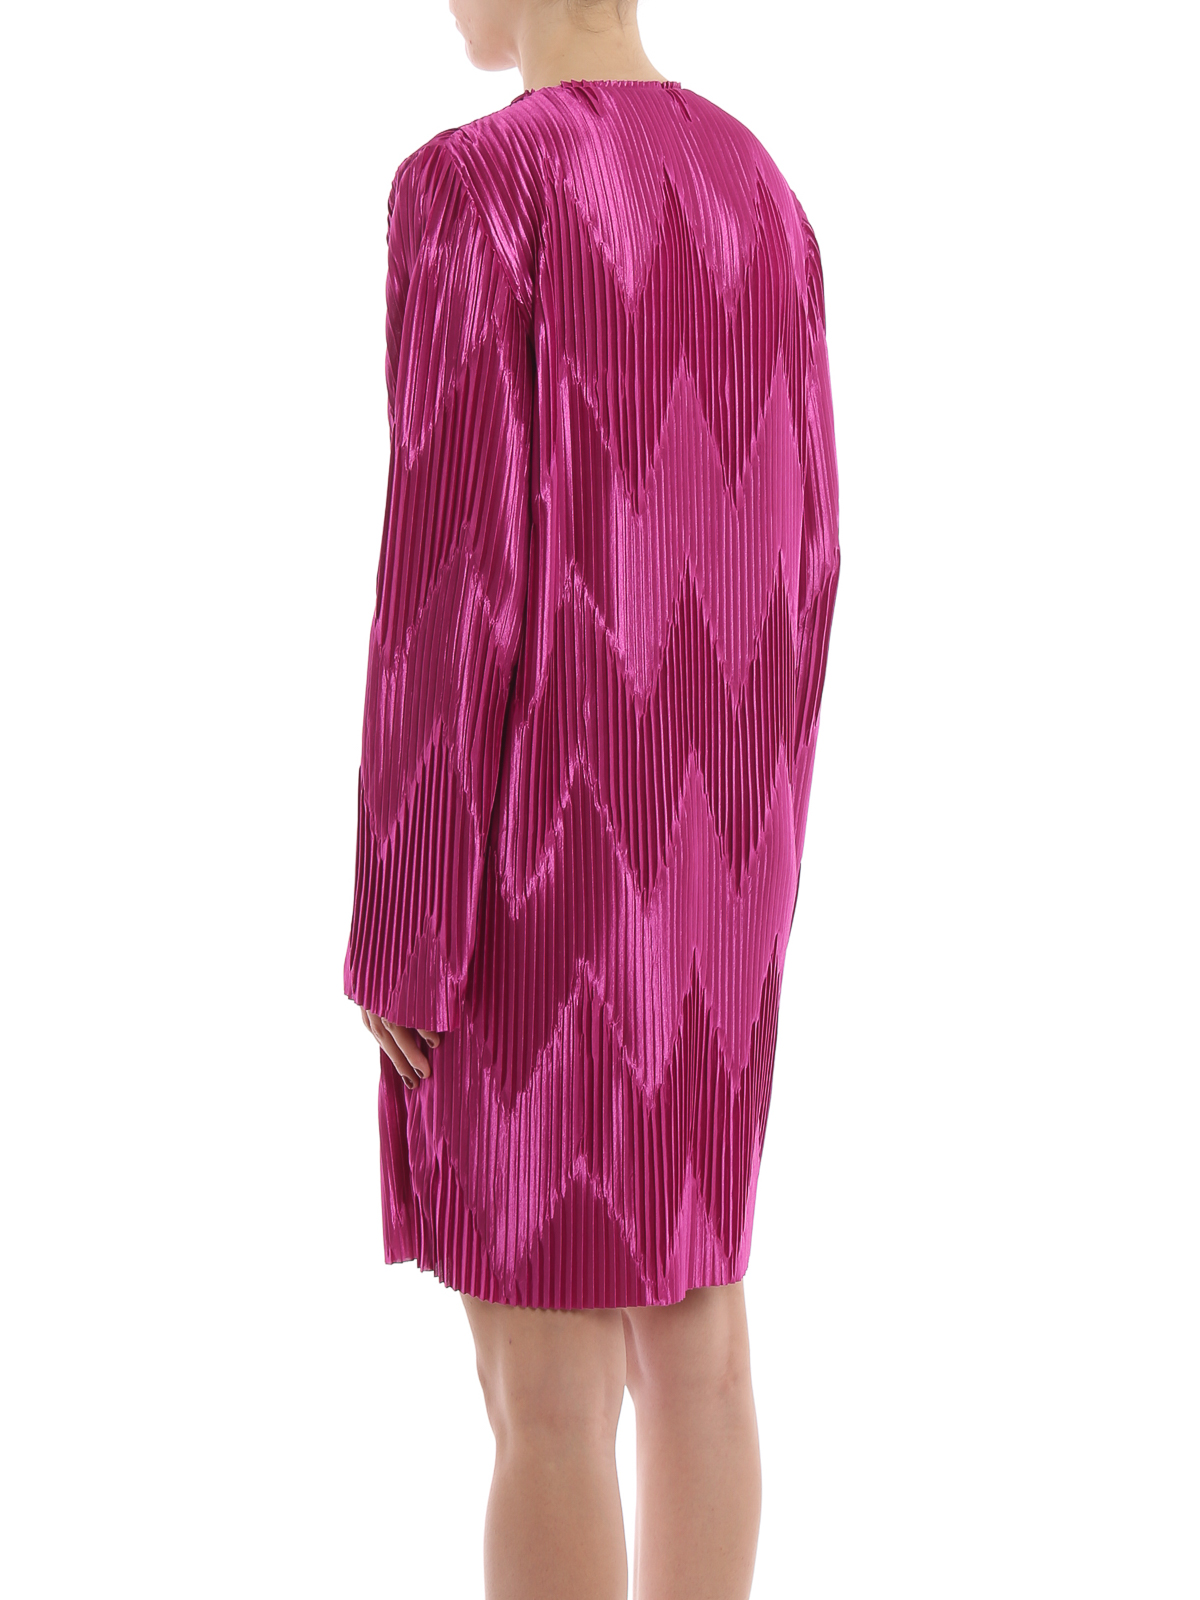 Givenchy - Orchid purple chevron pleated jersey dress - cocktail ... d068cbea7df66